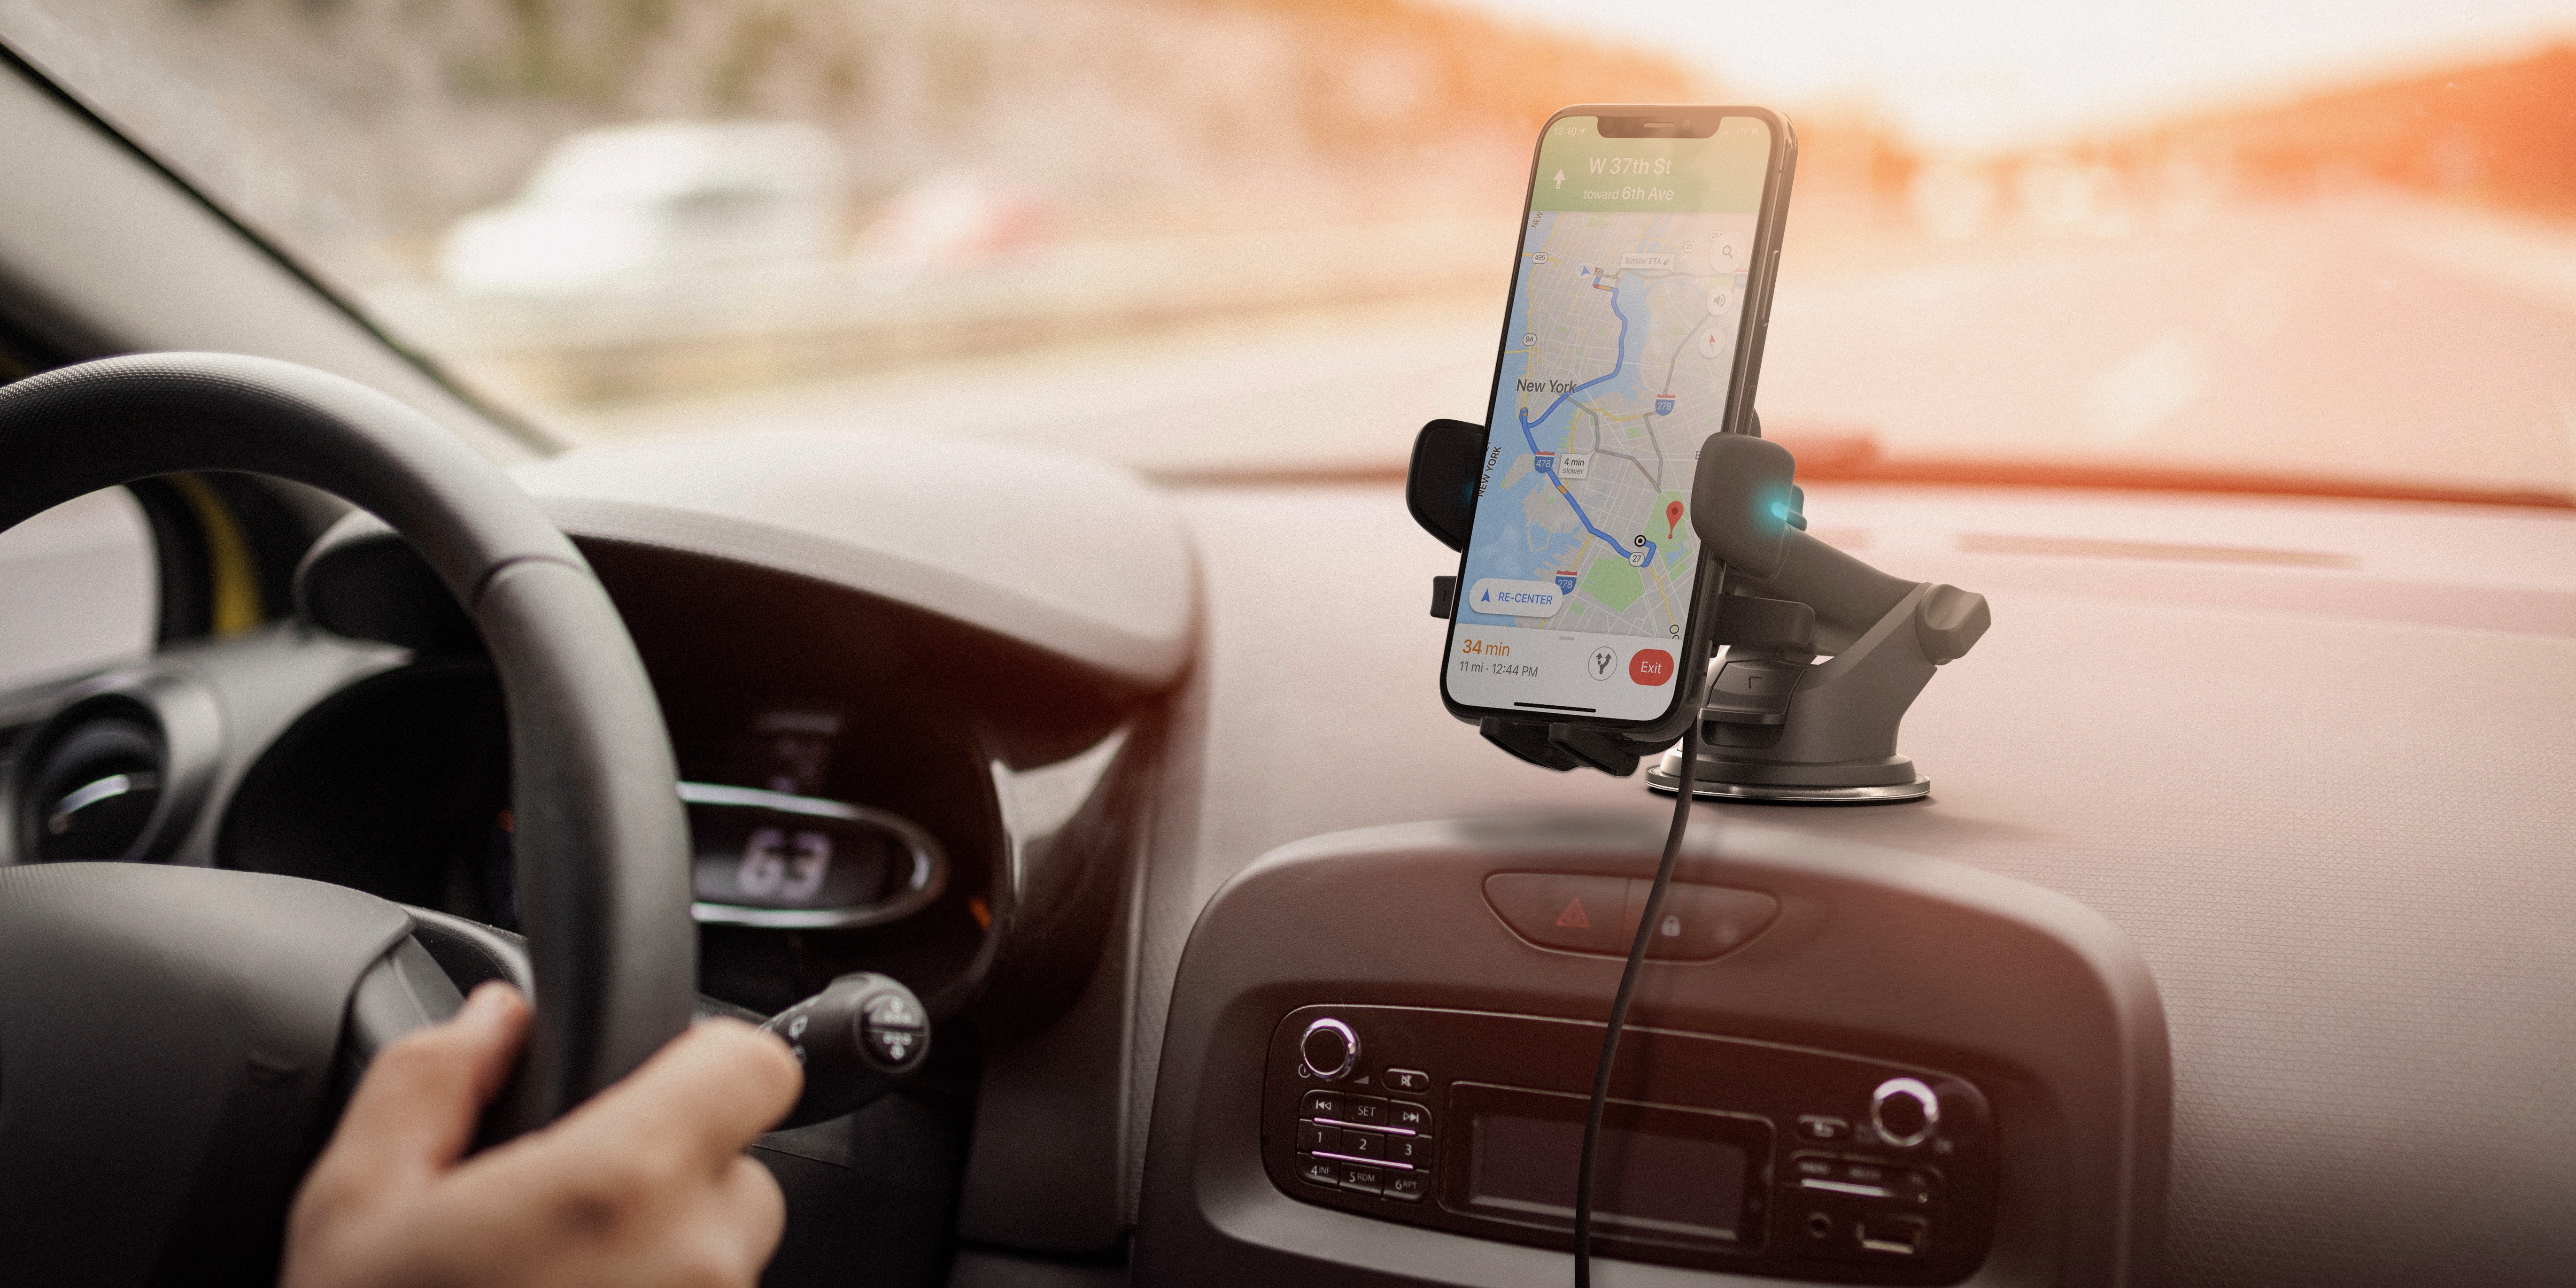 MFi Certified Universal Hands Free Alexa in Your car iOttie Easy One Touch Connect Pro Car Mount Phone Holder with Alexa Built in for iOS /& Android - Gen 2 New